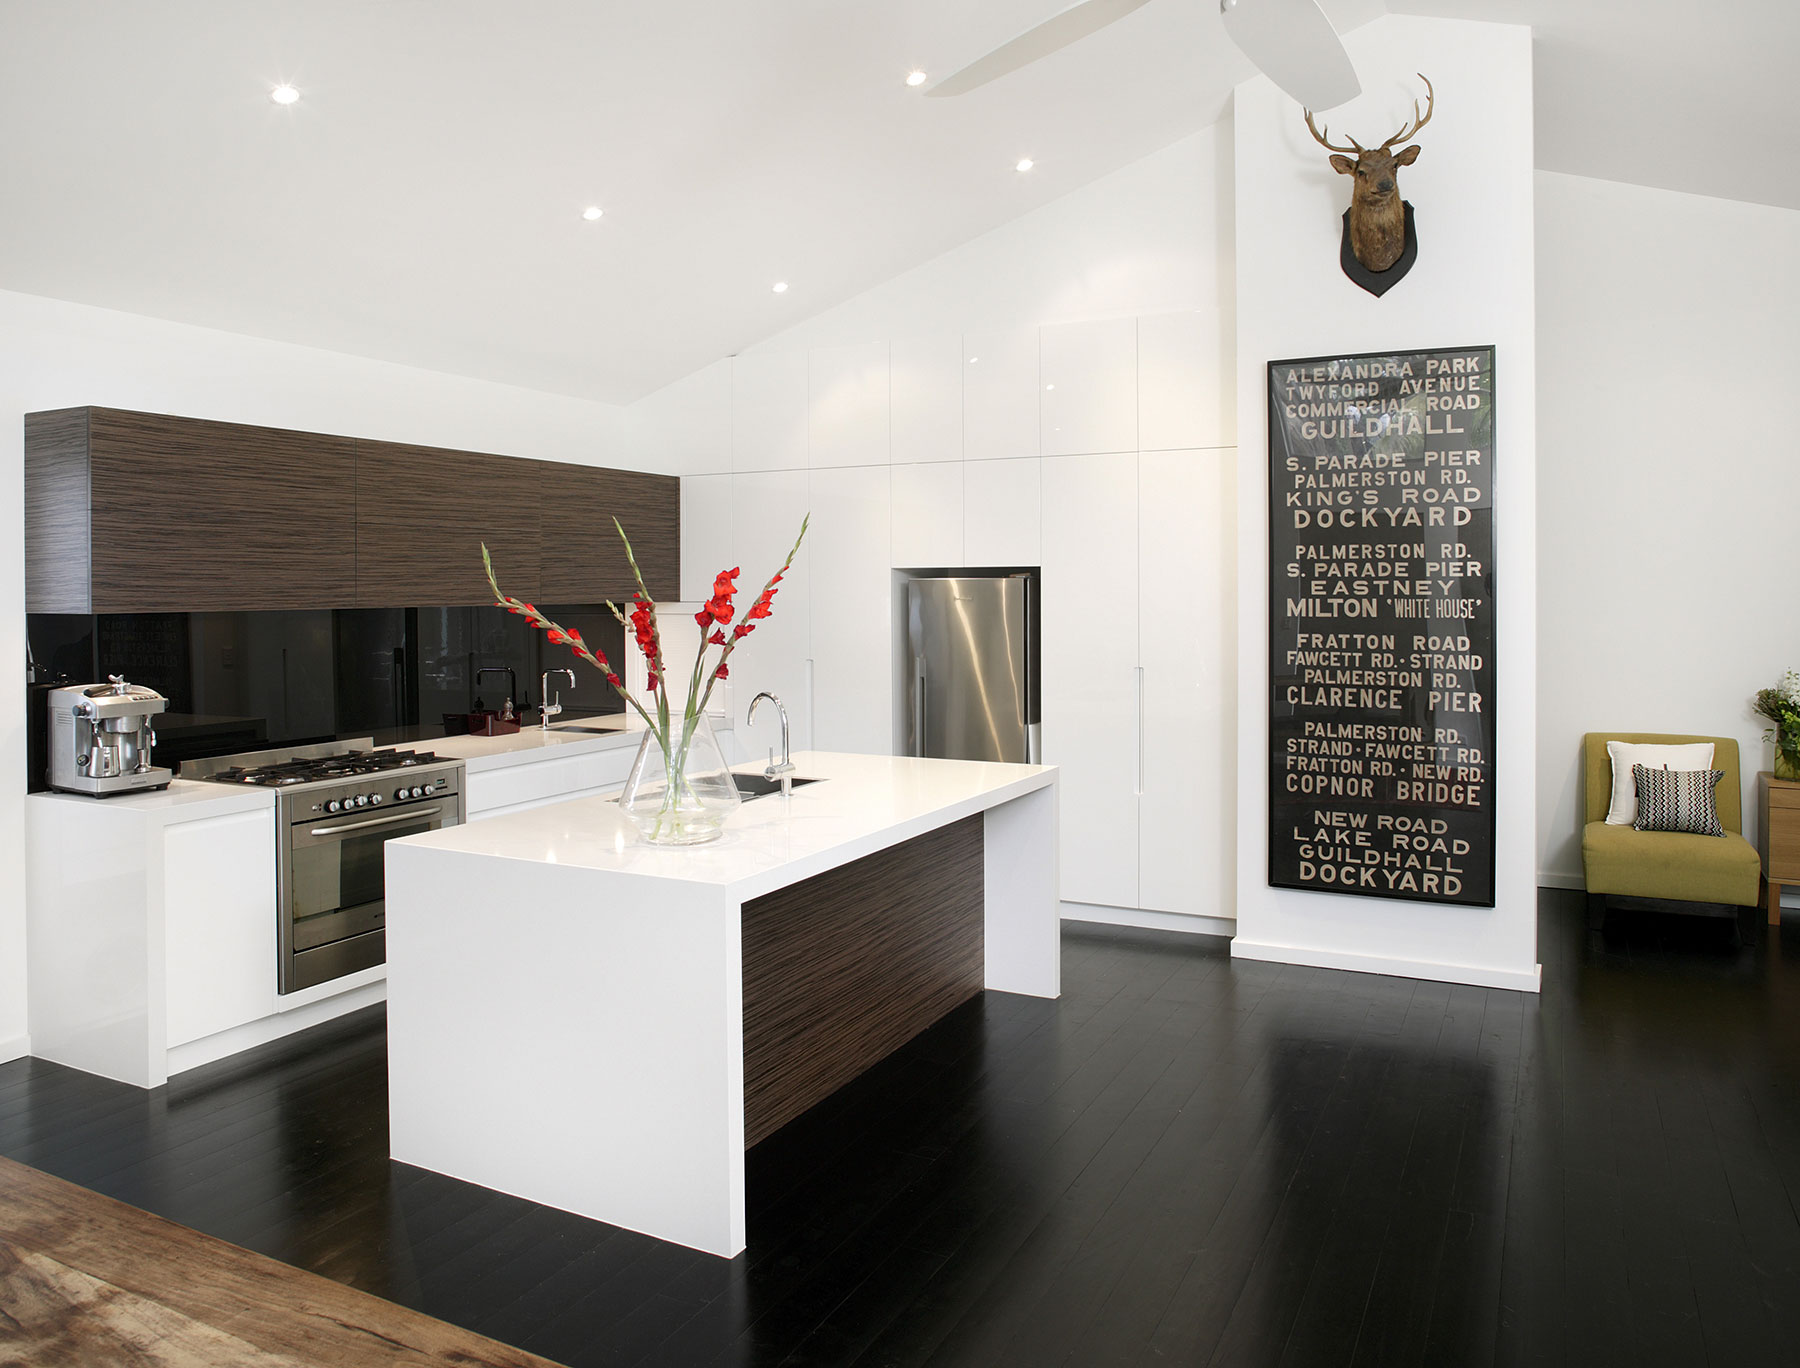 Trademark Kitchens and Designs